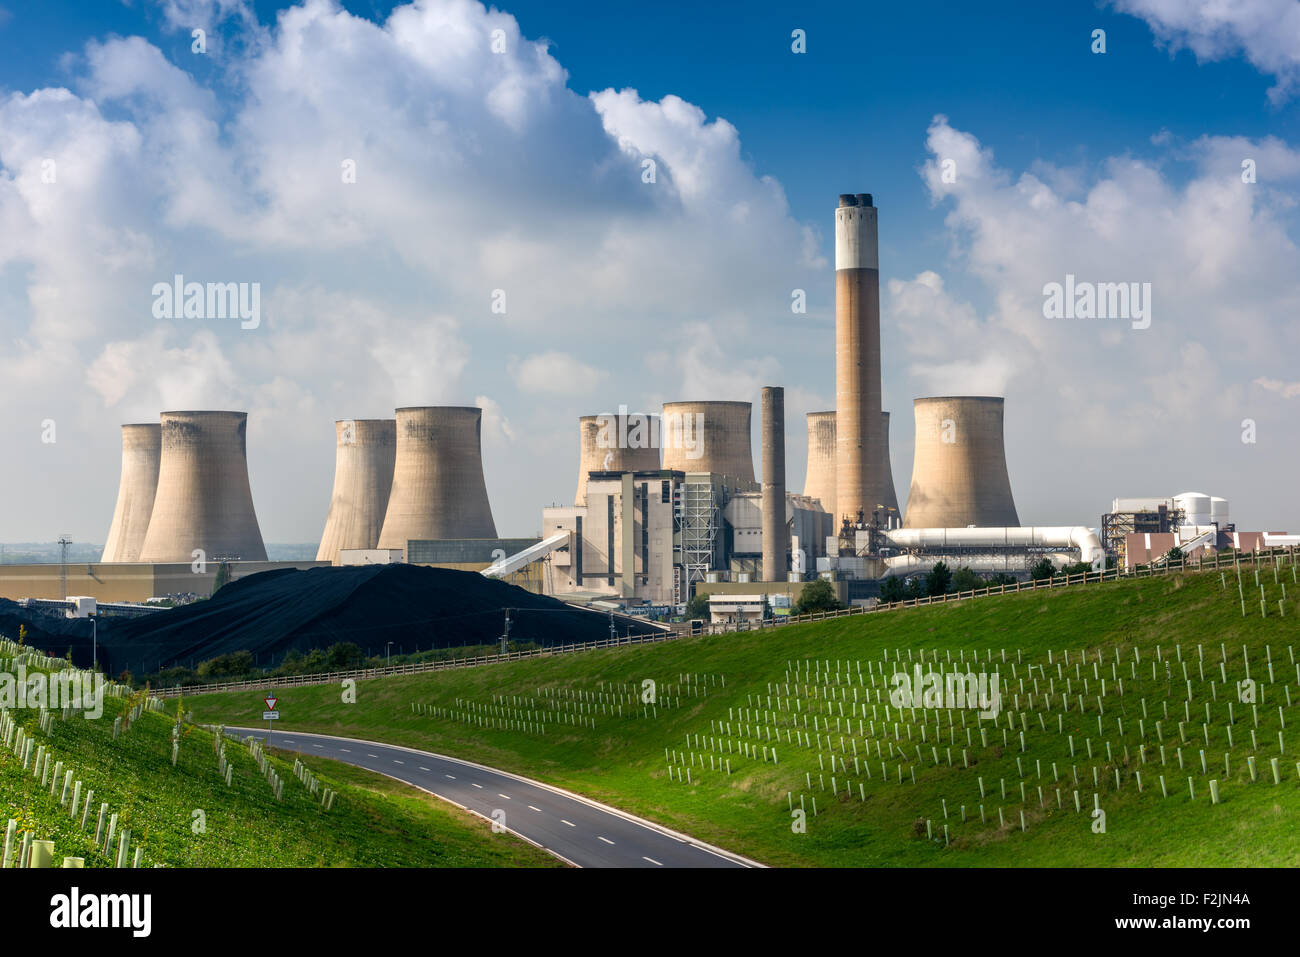 Ratcliffe-on-Soar Power Station - Stock Image